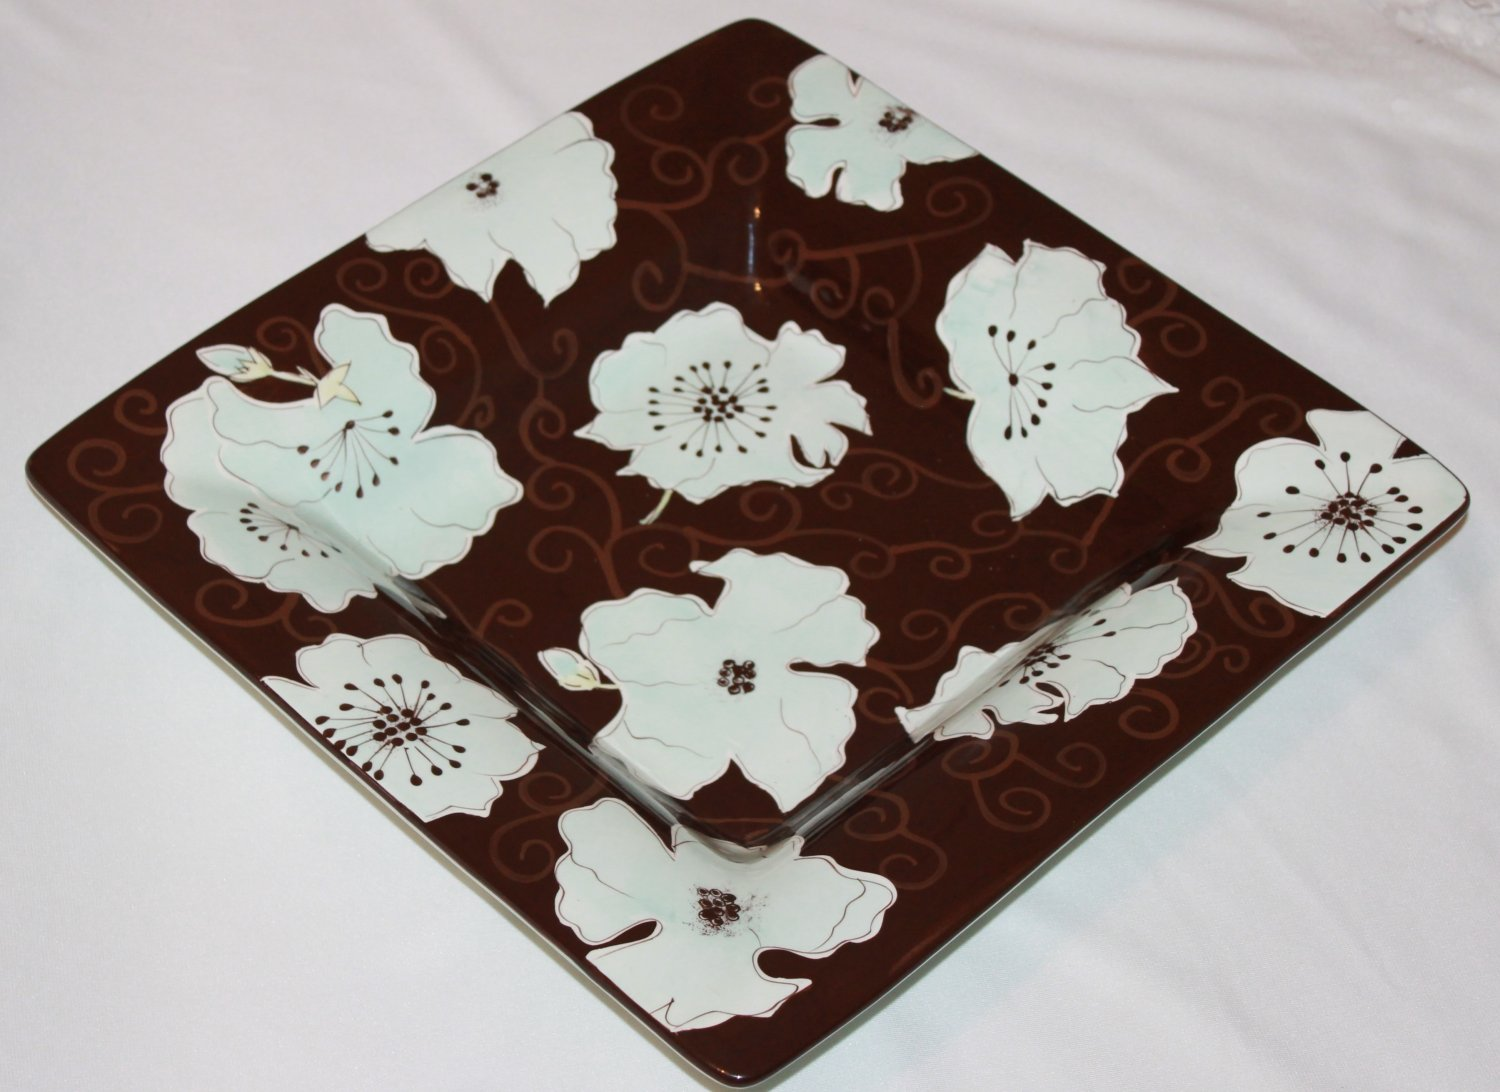 Serving Dish bowl - brown with light blue flowers